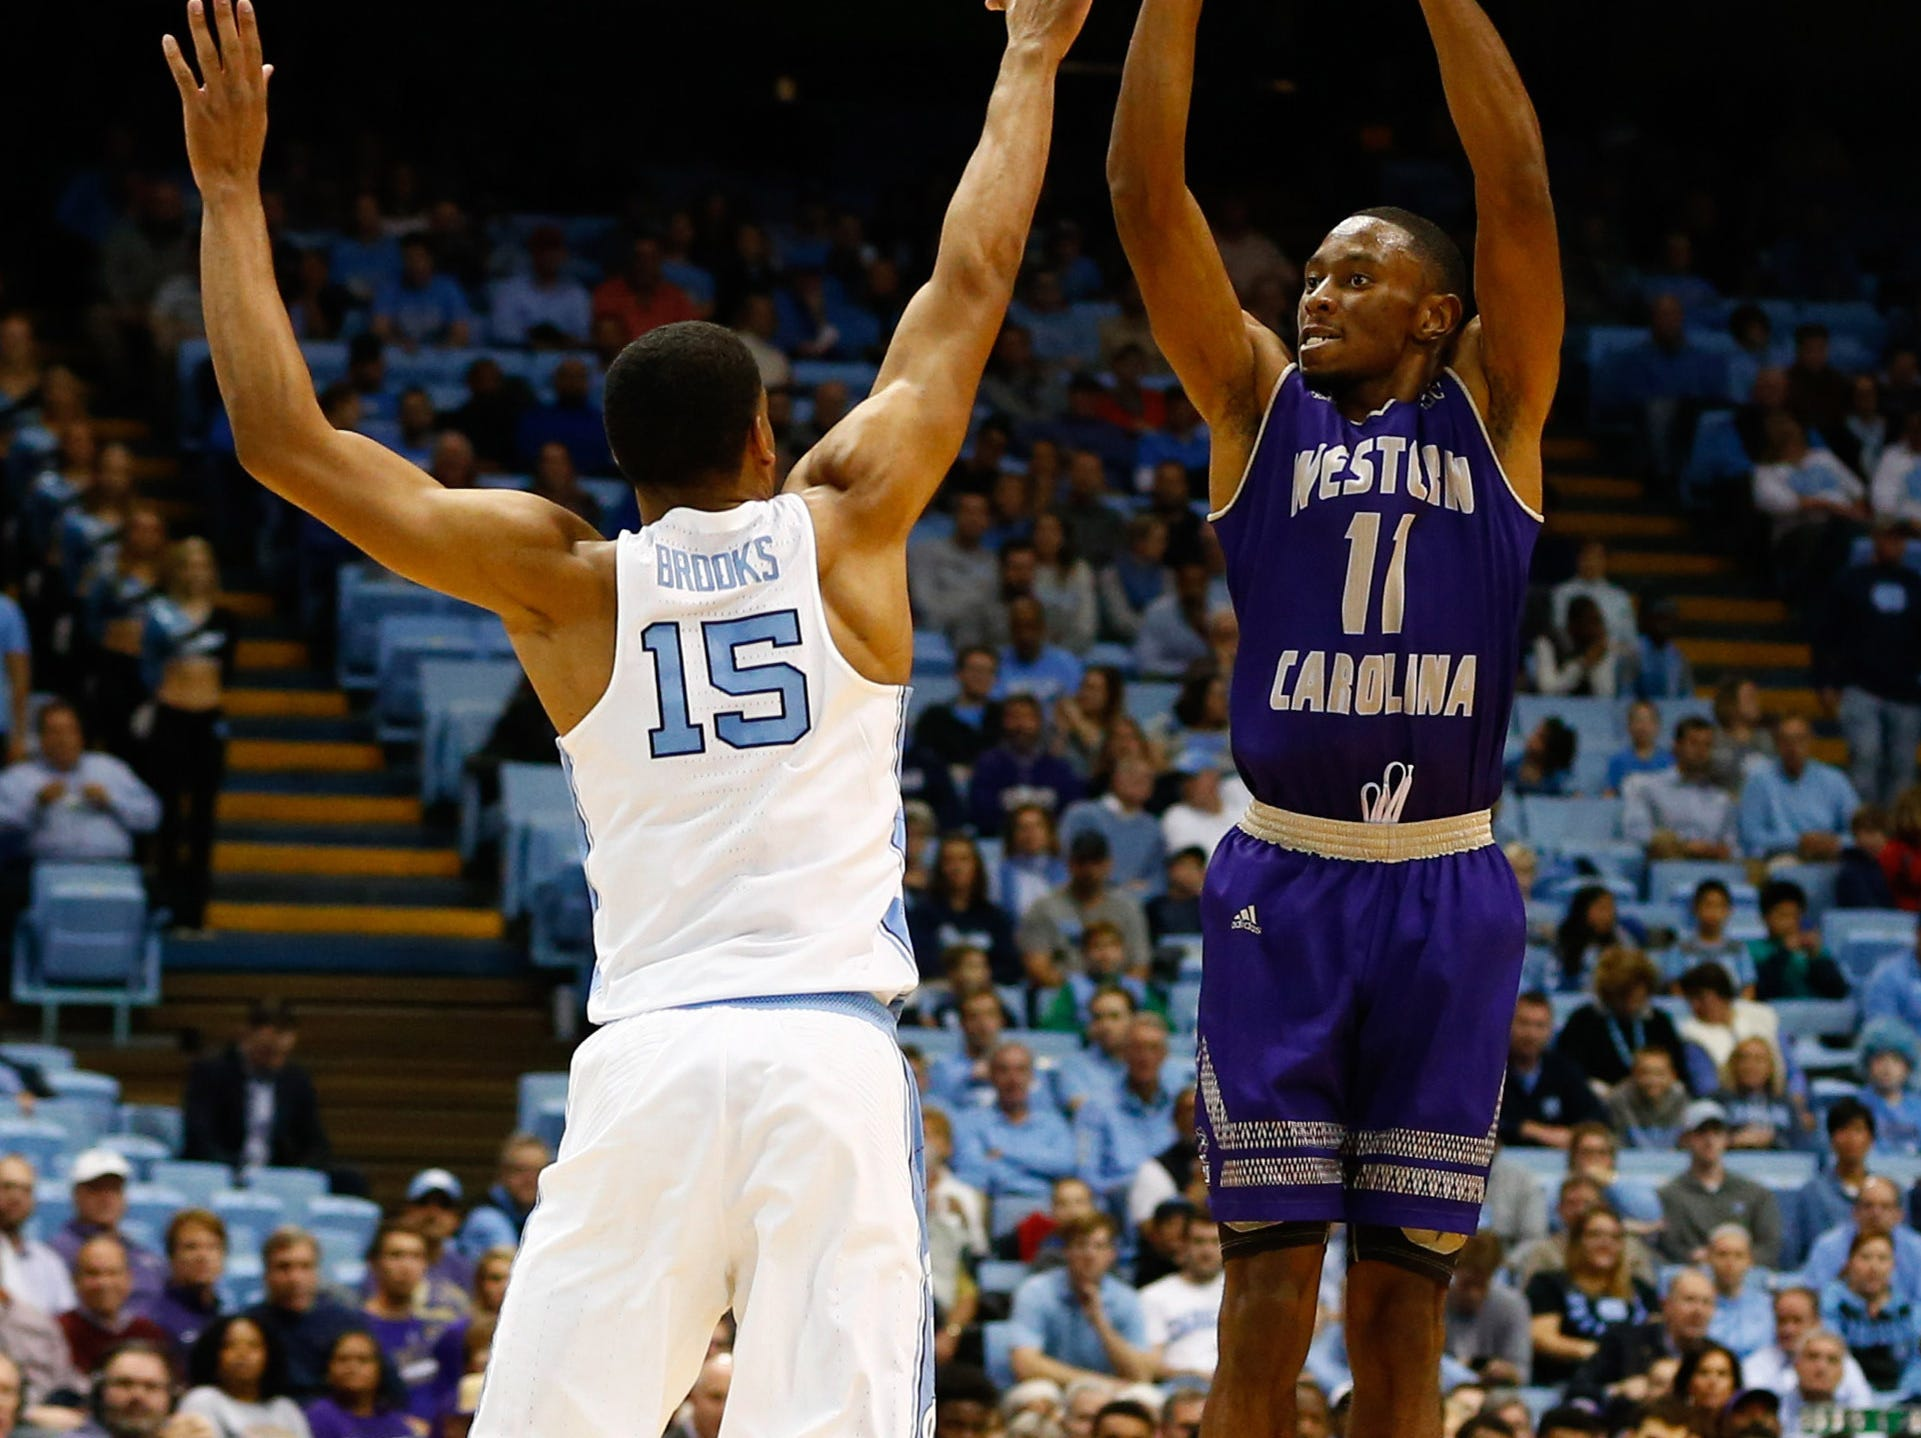 Dec 6, 2017; Chapel Hill, NC, USA; Western Carolina Catamounts guard Haboubacar Mutombo (11) shoots a three pointer against North Carolina Tar Heels forward Garrison Brooks (15) in the first half at Dean E. Smith Center. Mandatory Credit: Jeremy Brevard-USA TODAY Sports